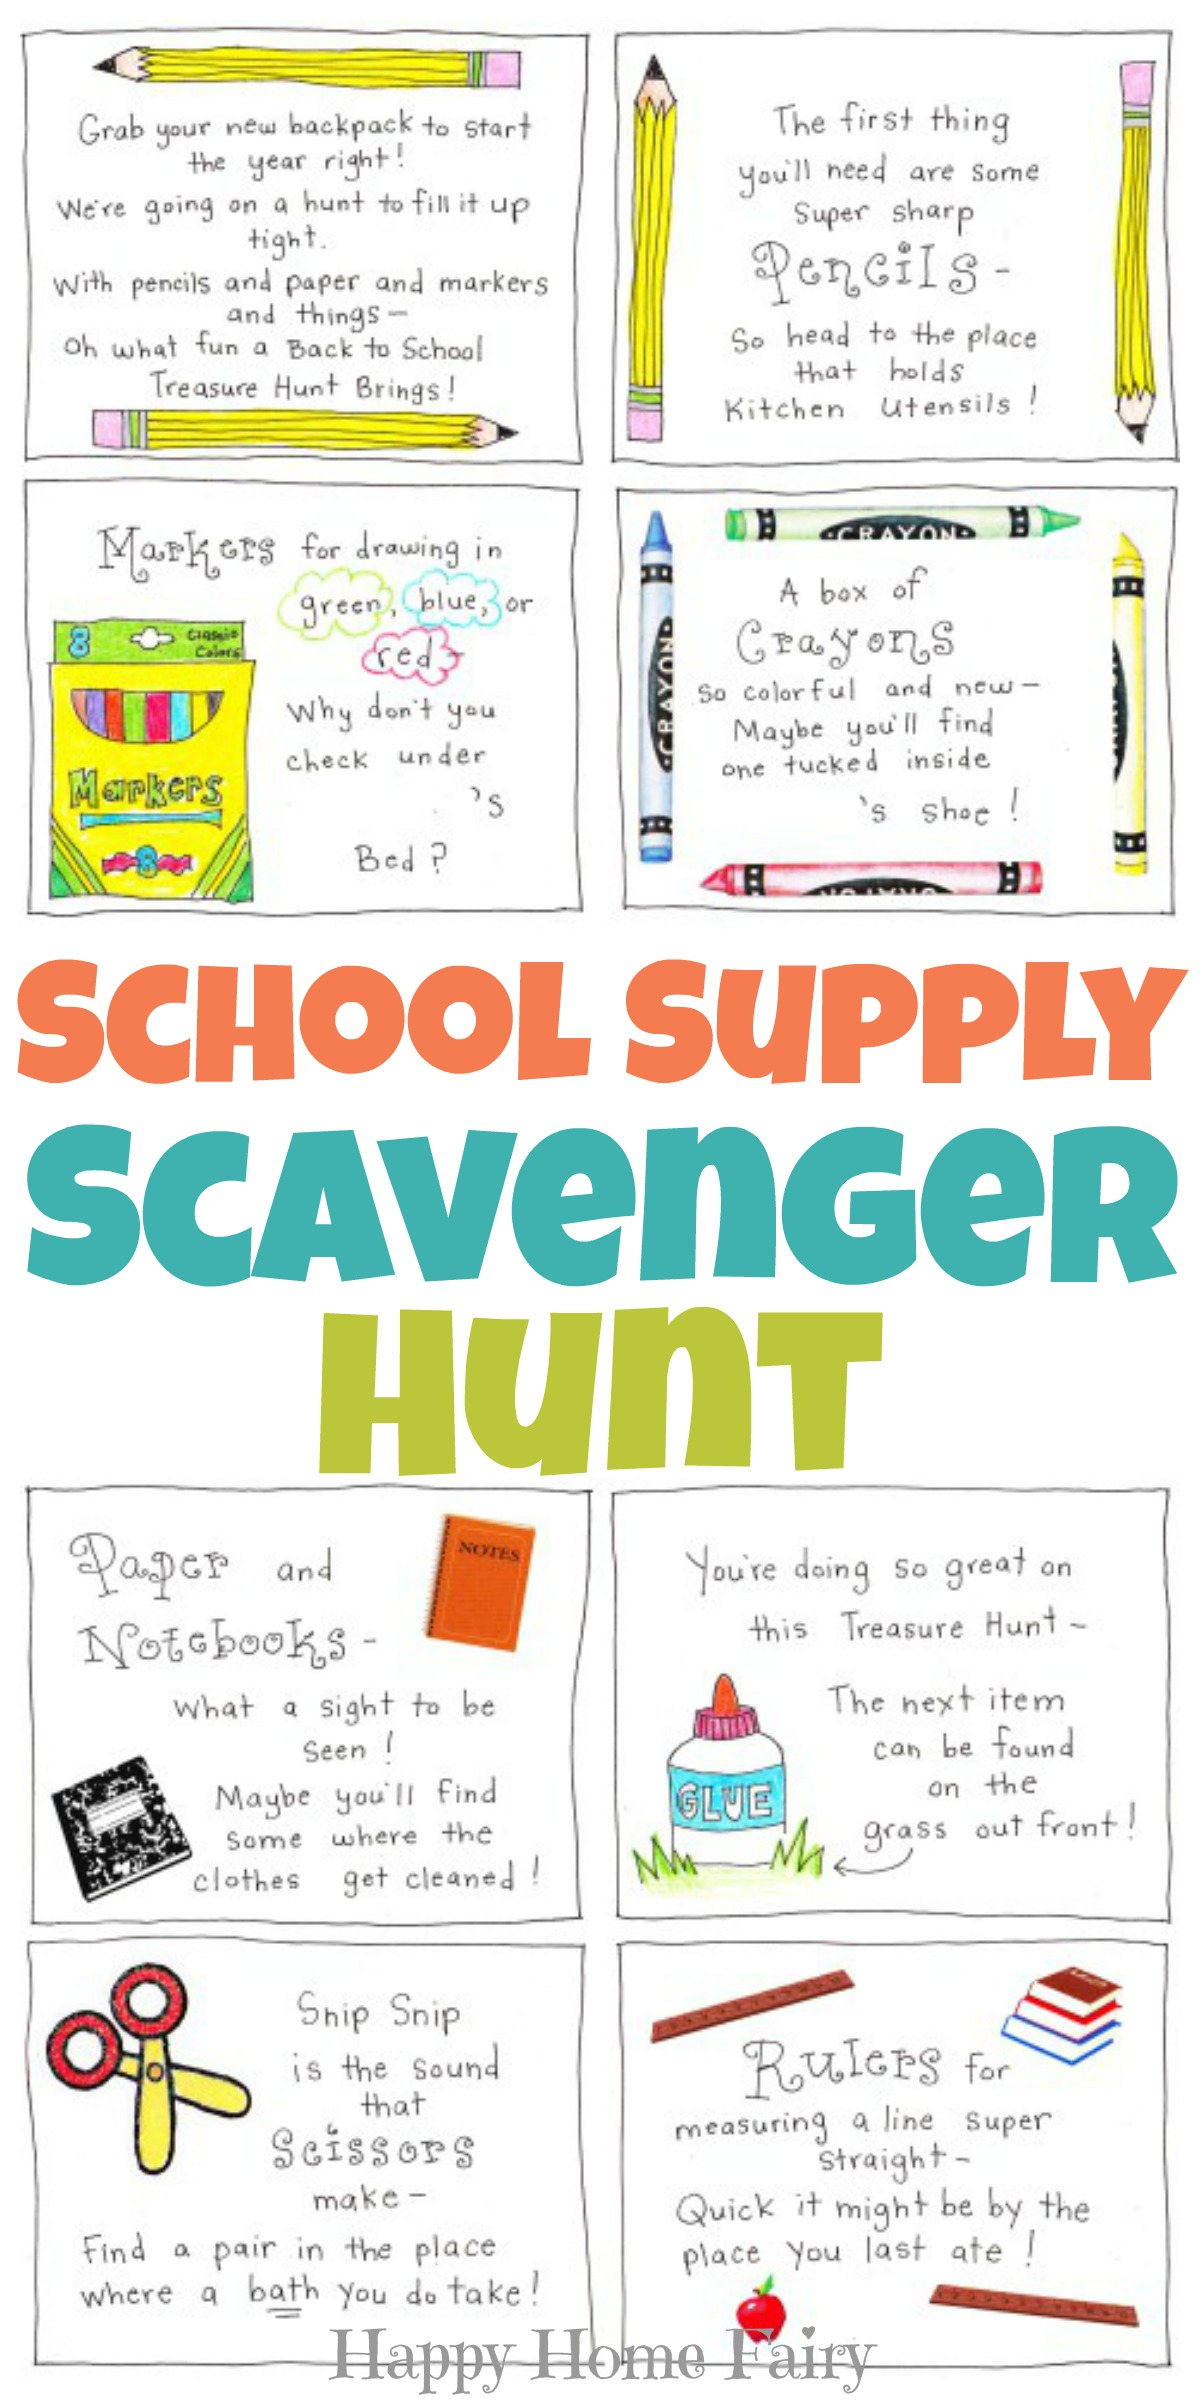 photo relating to Free Printable Scavenger Hunt named University Give Scavenger Hunt - No cost Printable! - Satisfied Dwelling